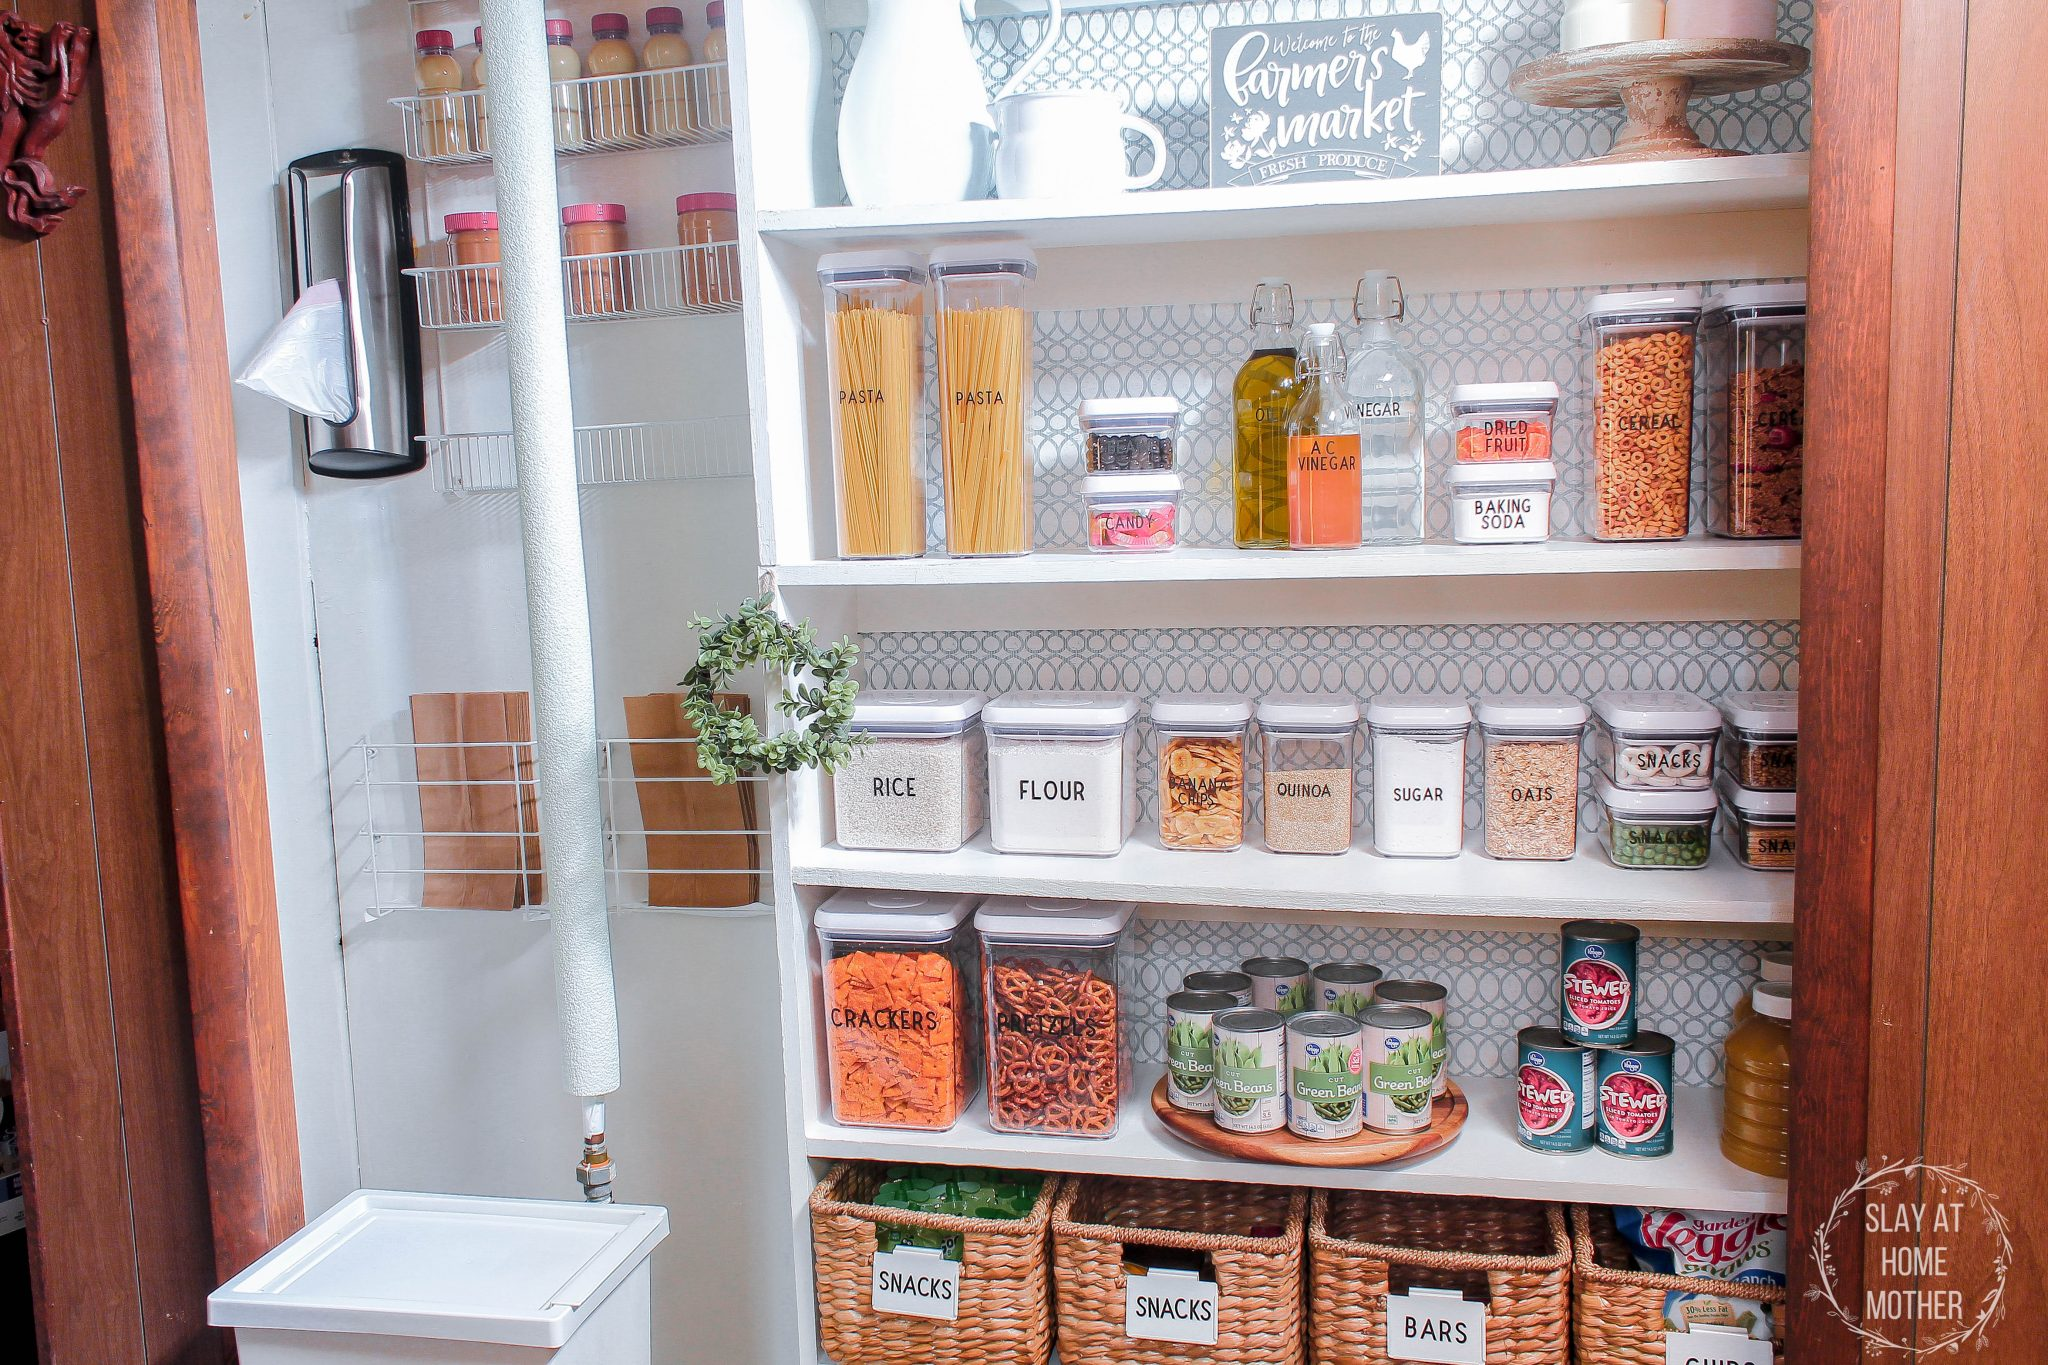 My finished pantry with white walls, contact paper wallpaper, and dry goods organized in labeled bins and baskets